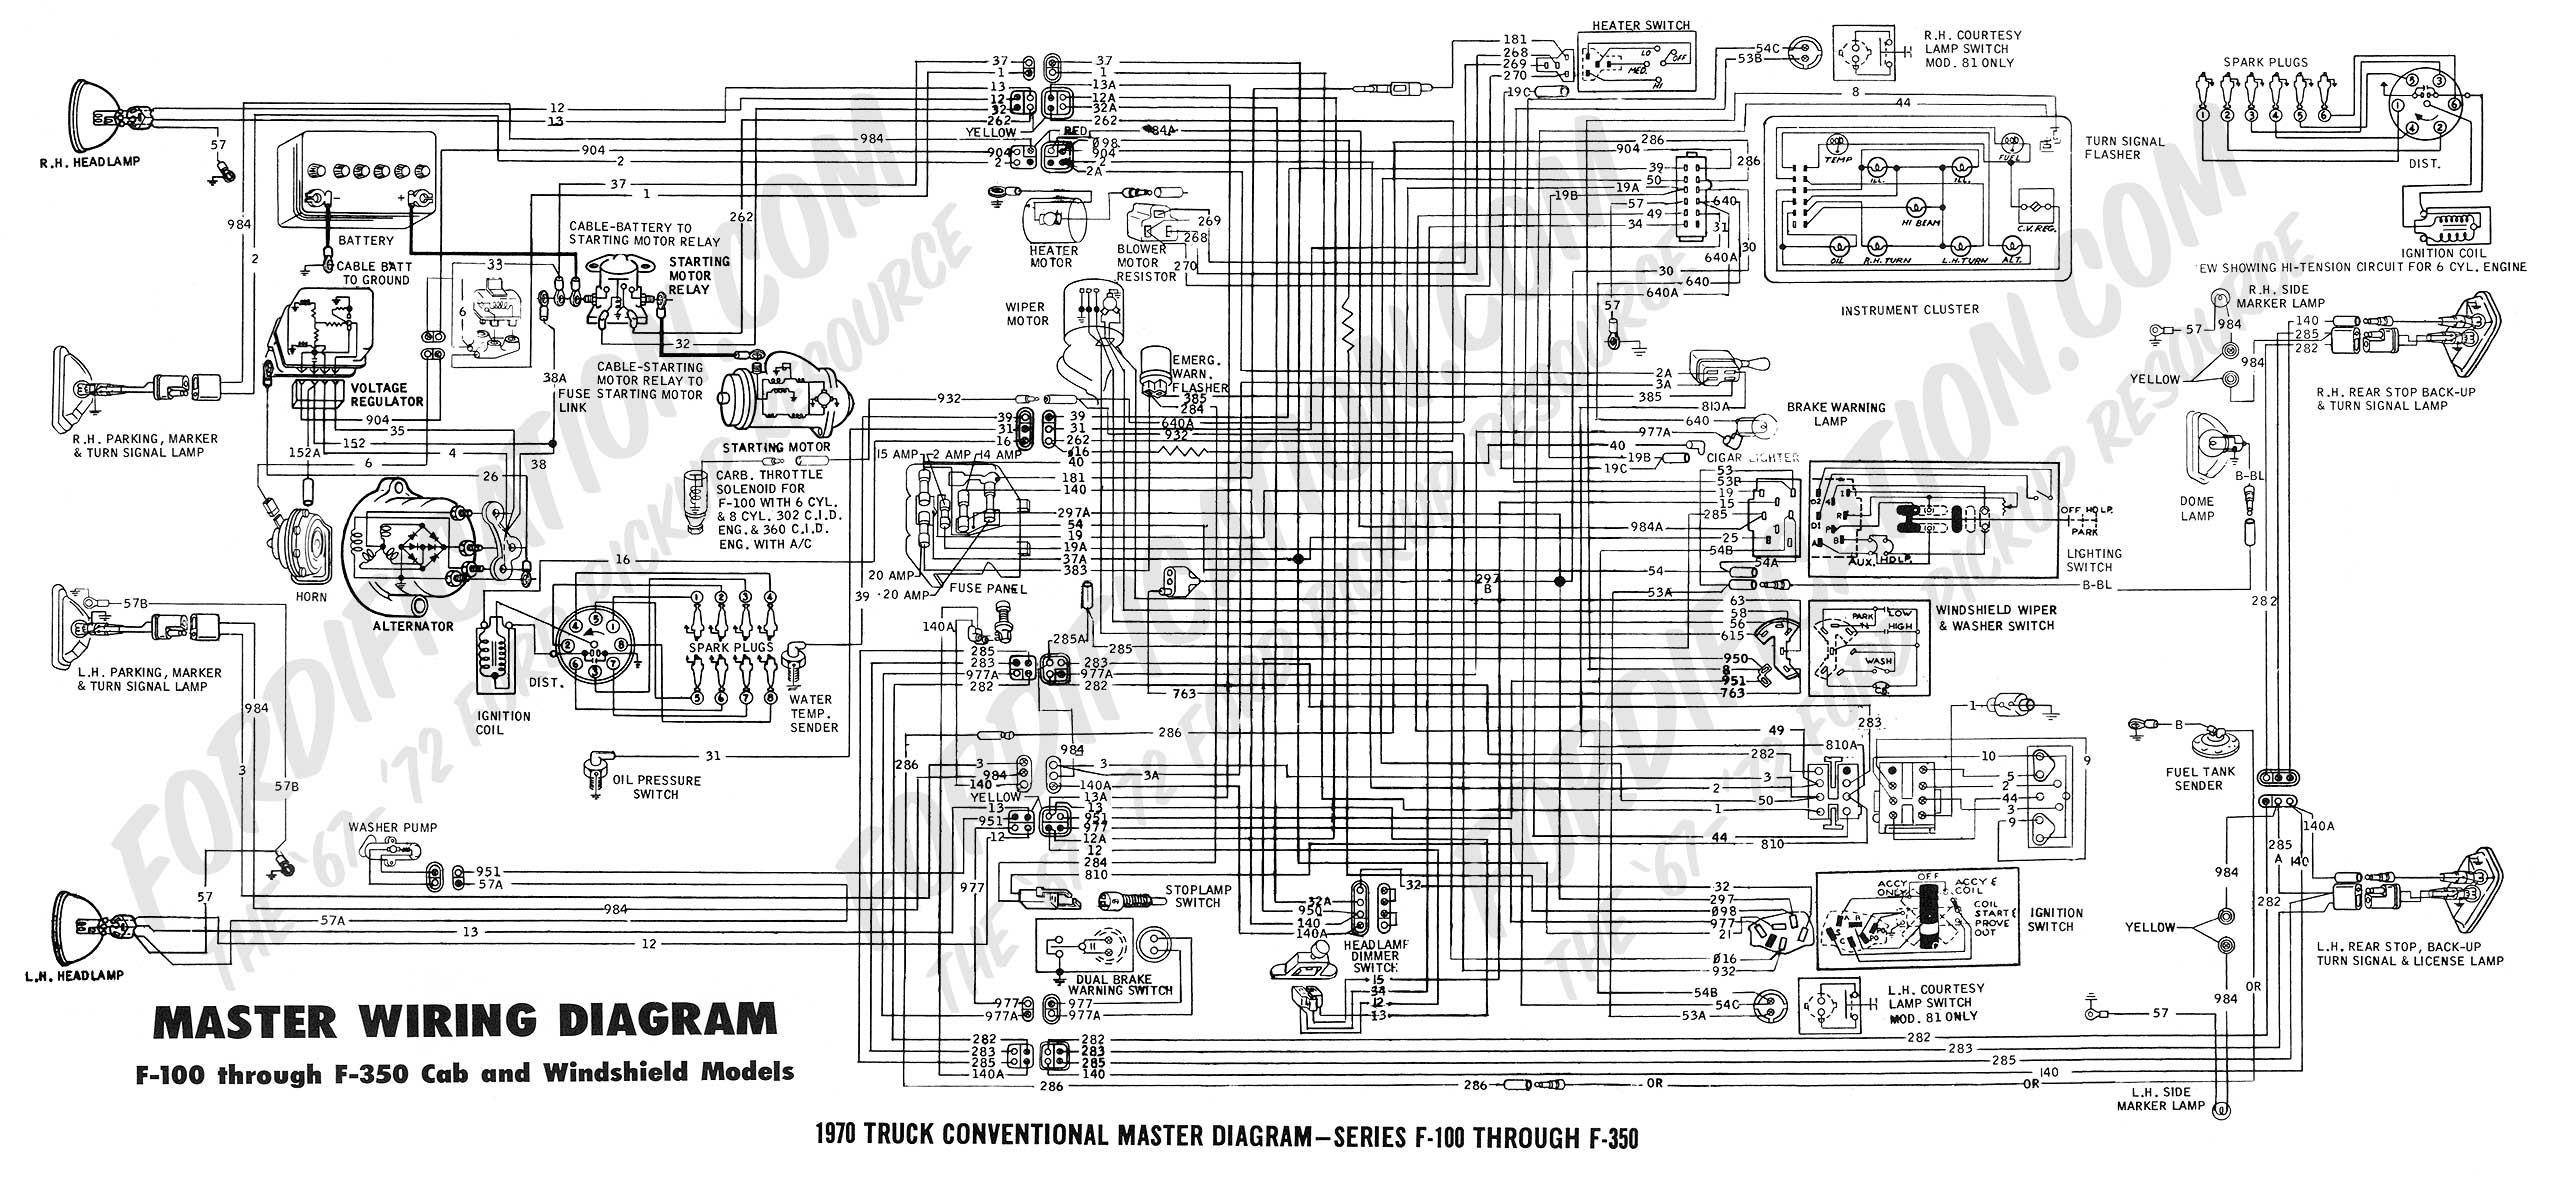 f100 wiring diagram f100 wiper motor wiring diagram wiring diagram rh hg4 co Ford E-250 Radio Wiring Diagram 2007 ford e250 radio wiring diagram